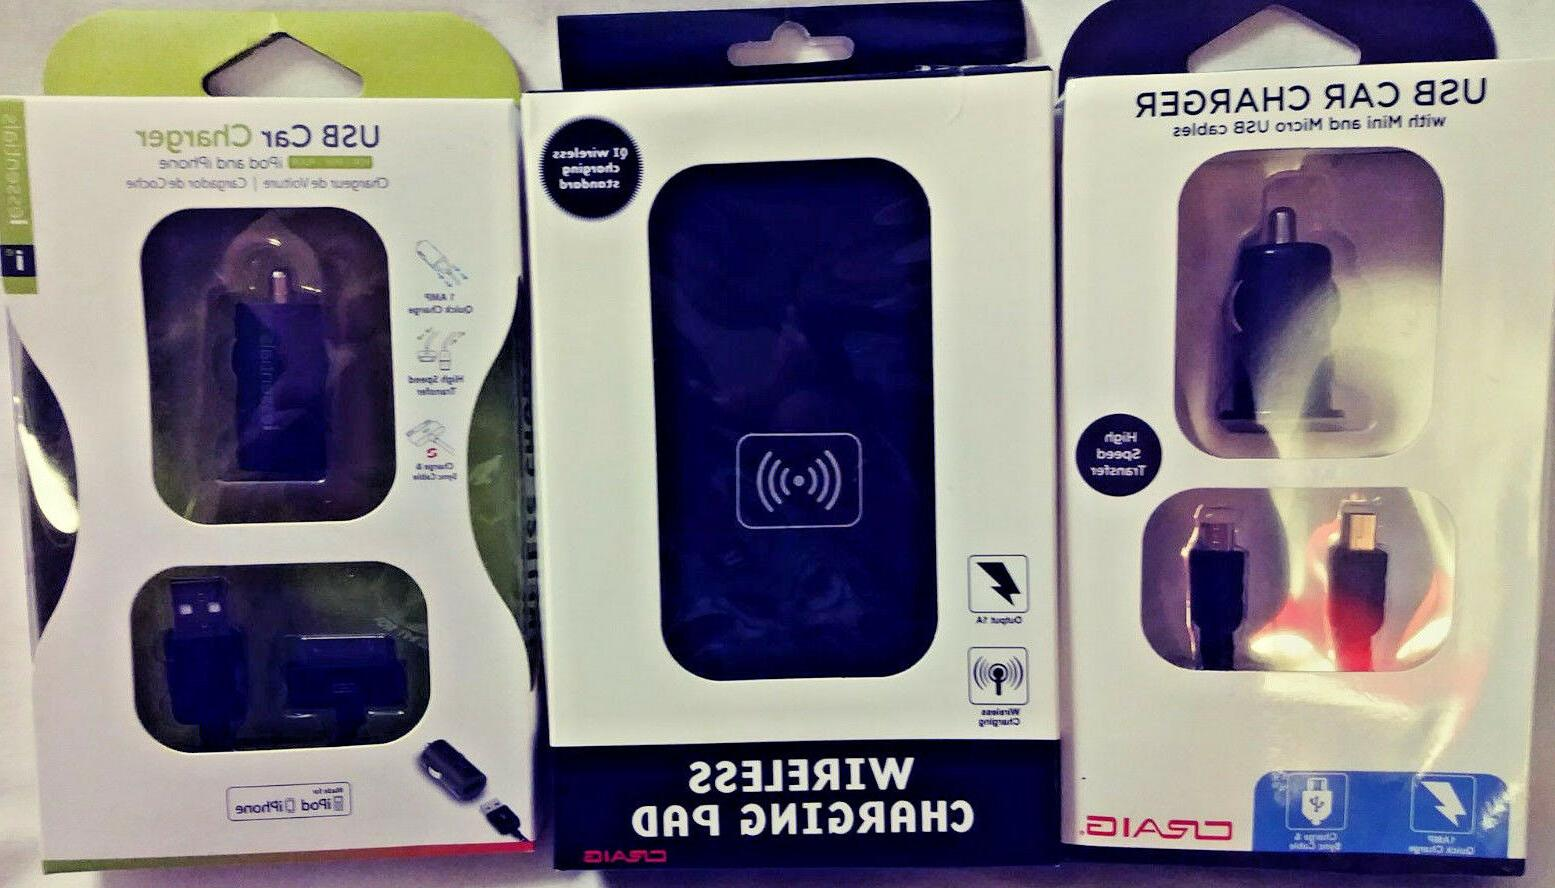 CRAIG USB CAR CHARGER MINI & MICRO USB CABLES + WIRELESS CHA